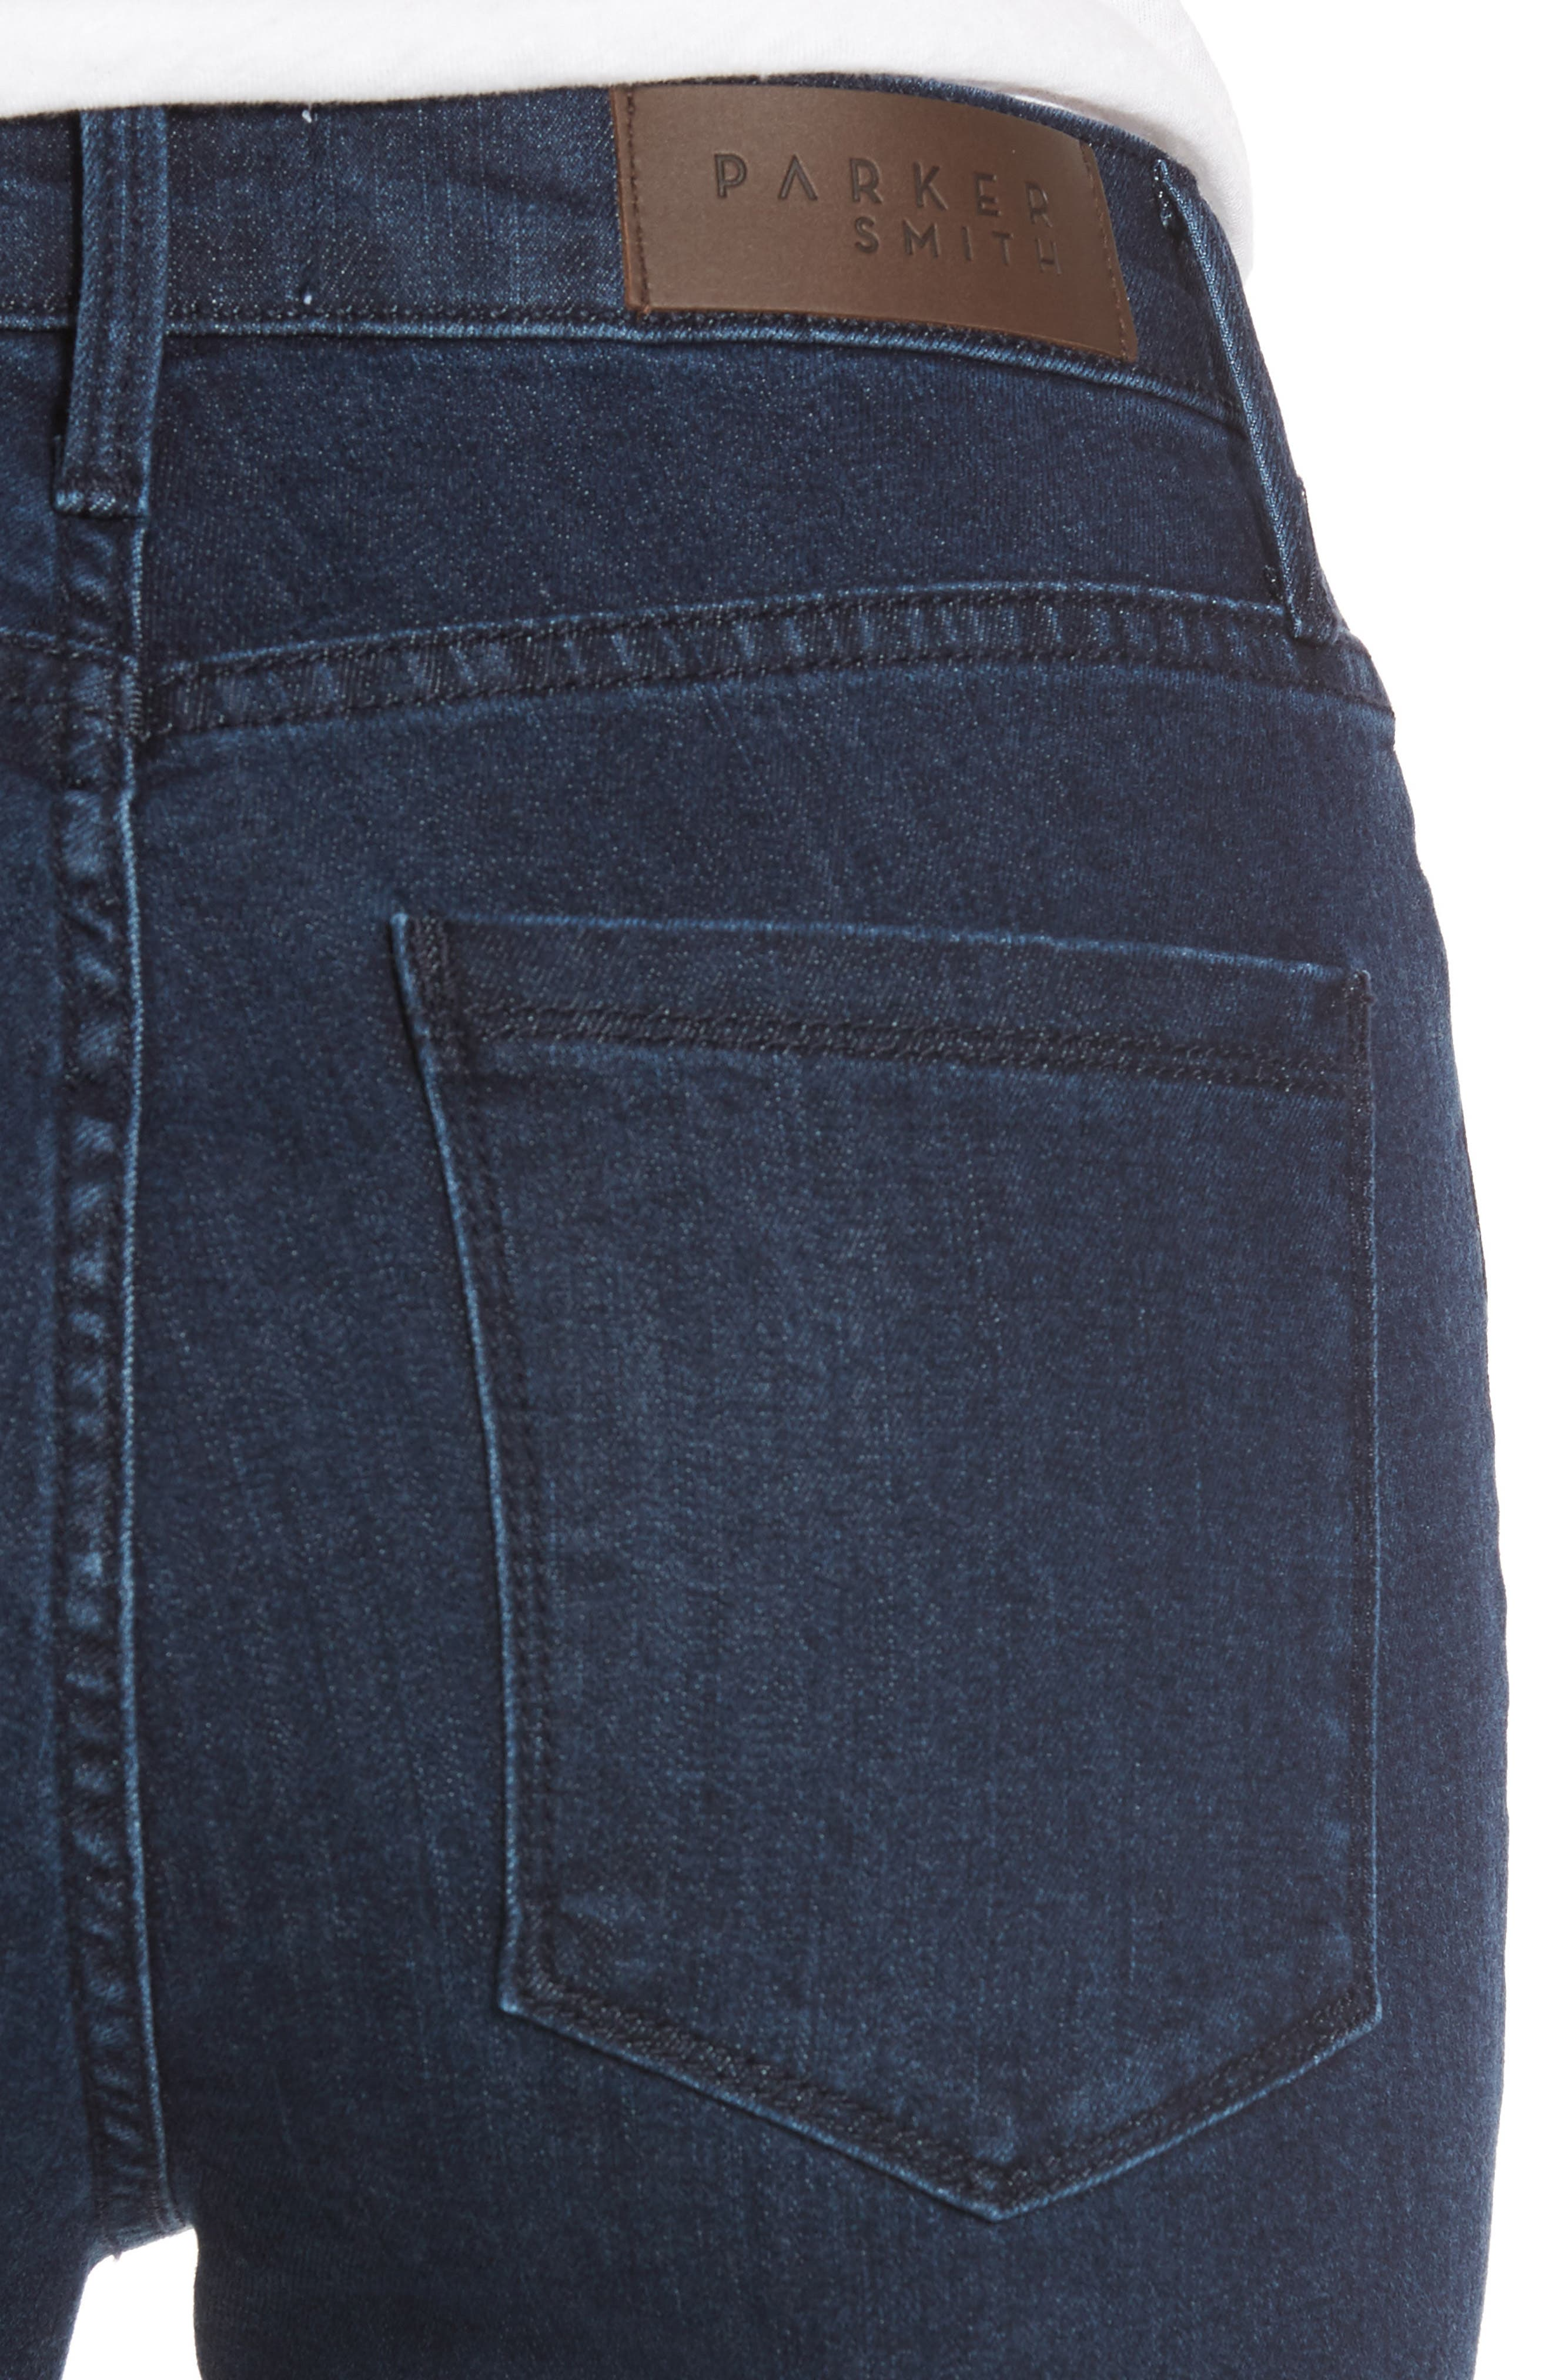 Alternate Image 4  - PARKER SMITH Bombshell Runaround Straight Leg Jeans (Baltic)